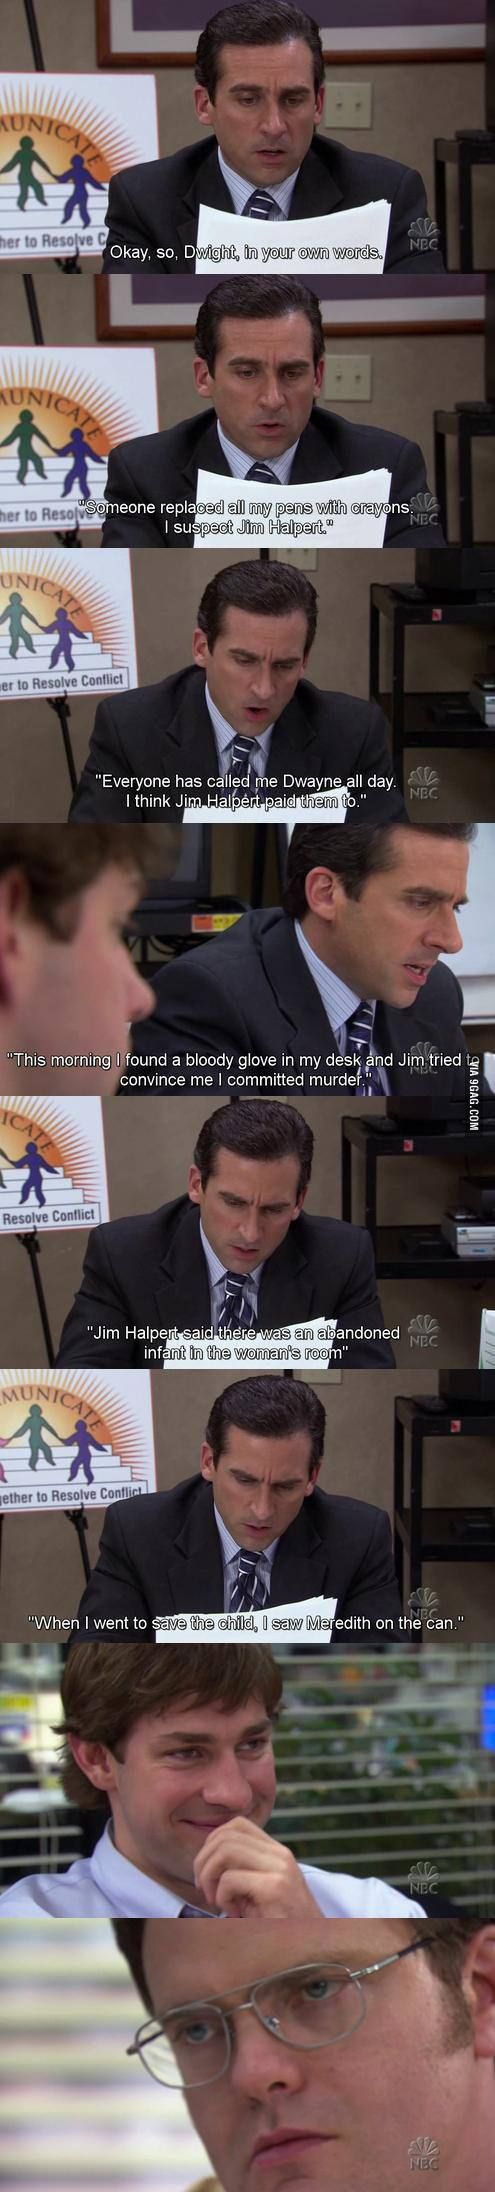 Best scene from the office. Jim and Dwight. Lmfao!! Jim Halpert is my hero lol